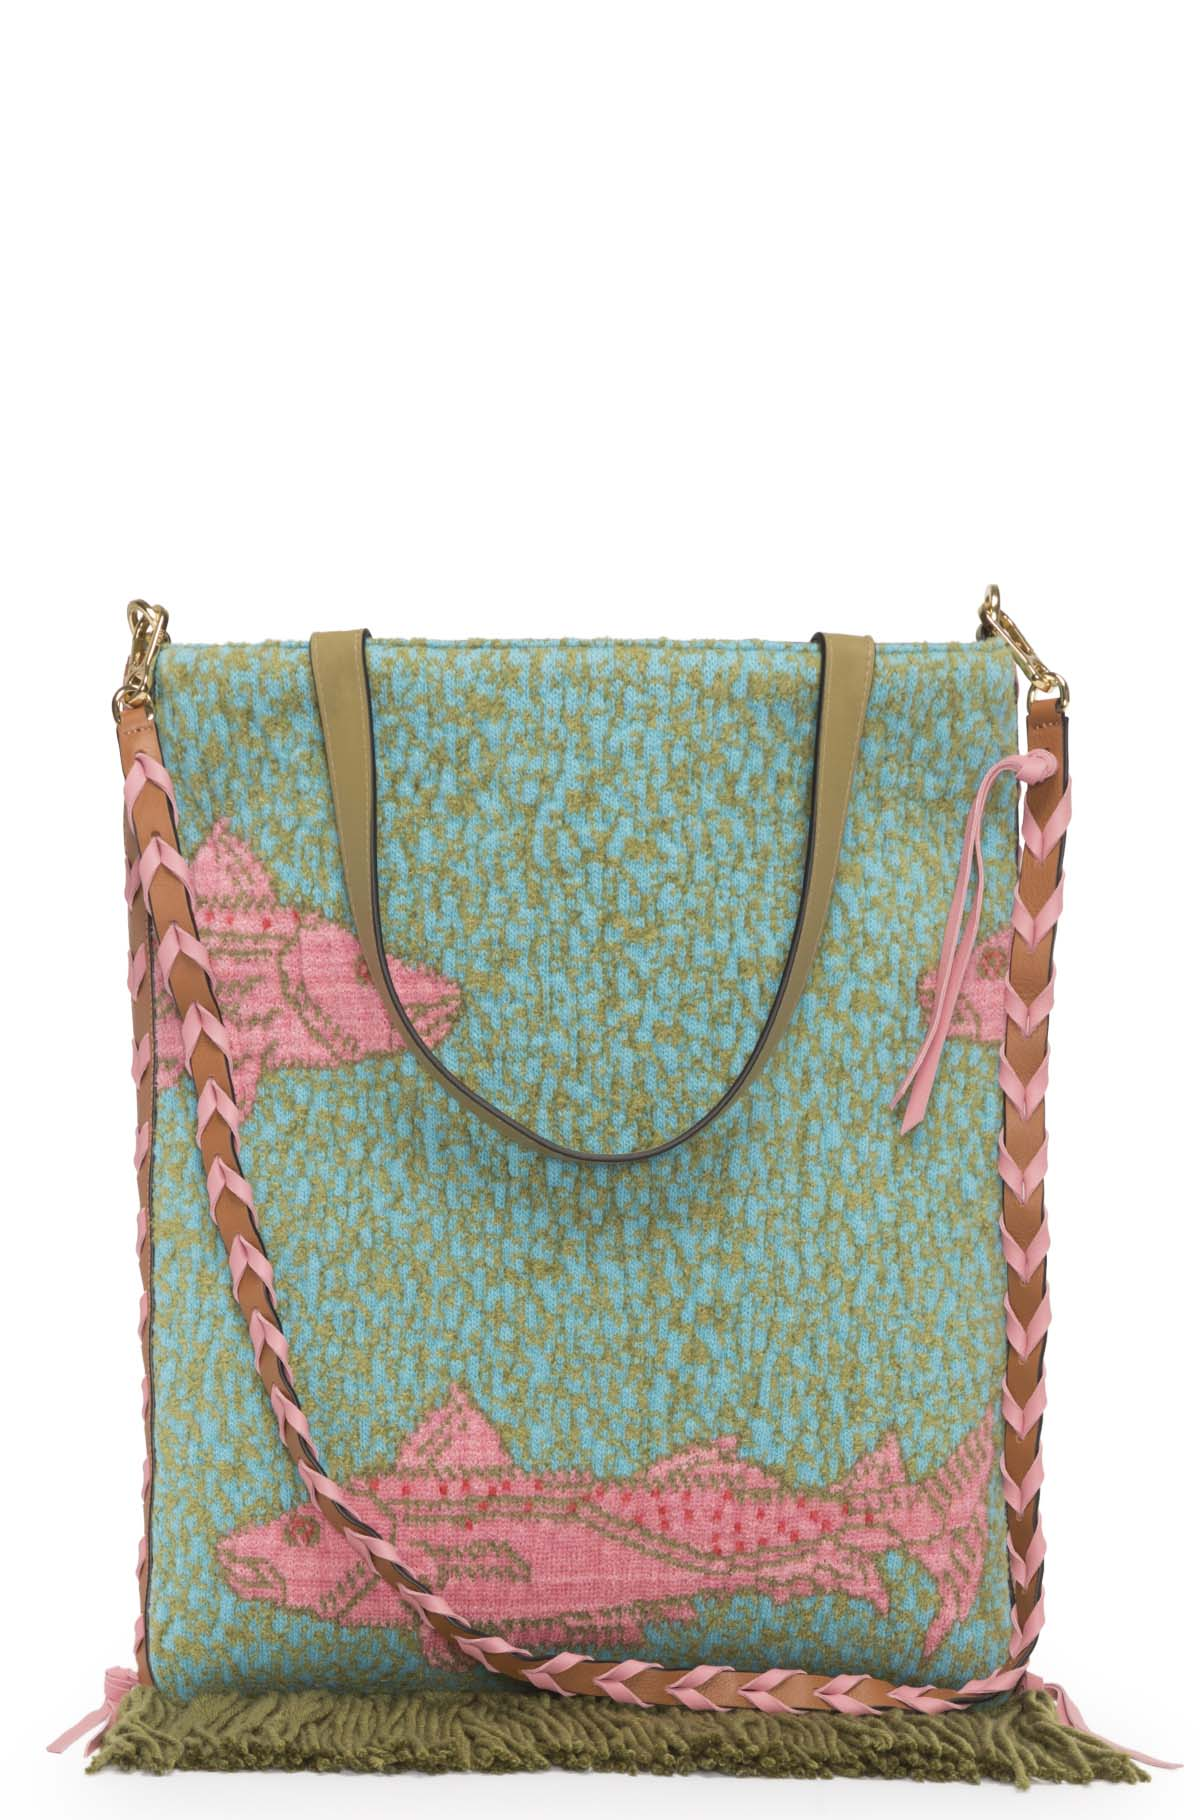 LOEWE Vertical Tote Fishes Bag Green/Tan front